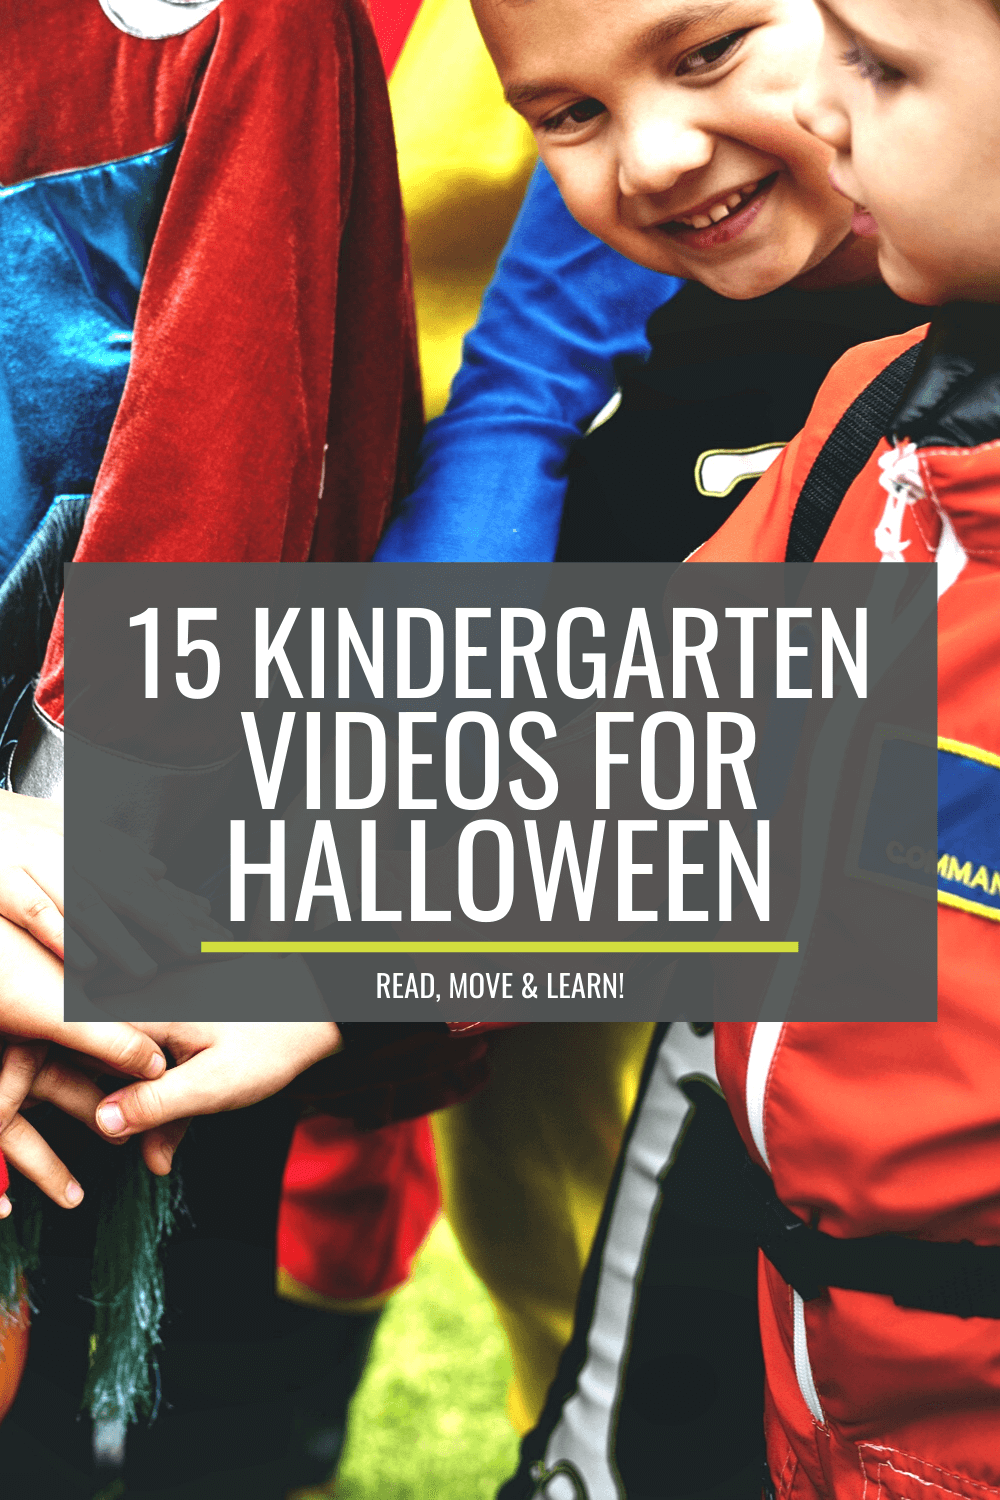 15 Kindergarten Videos for Halloween - Read, Move and Learn!